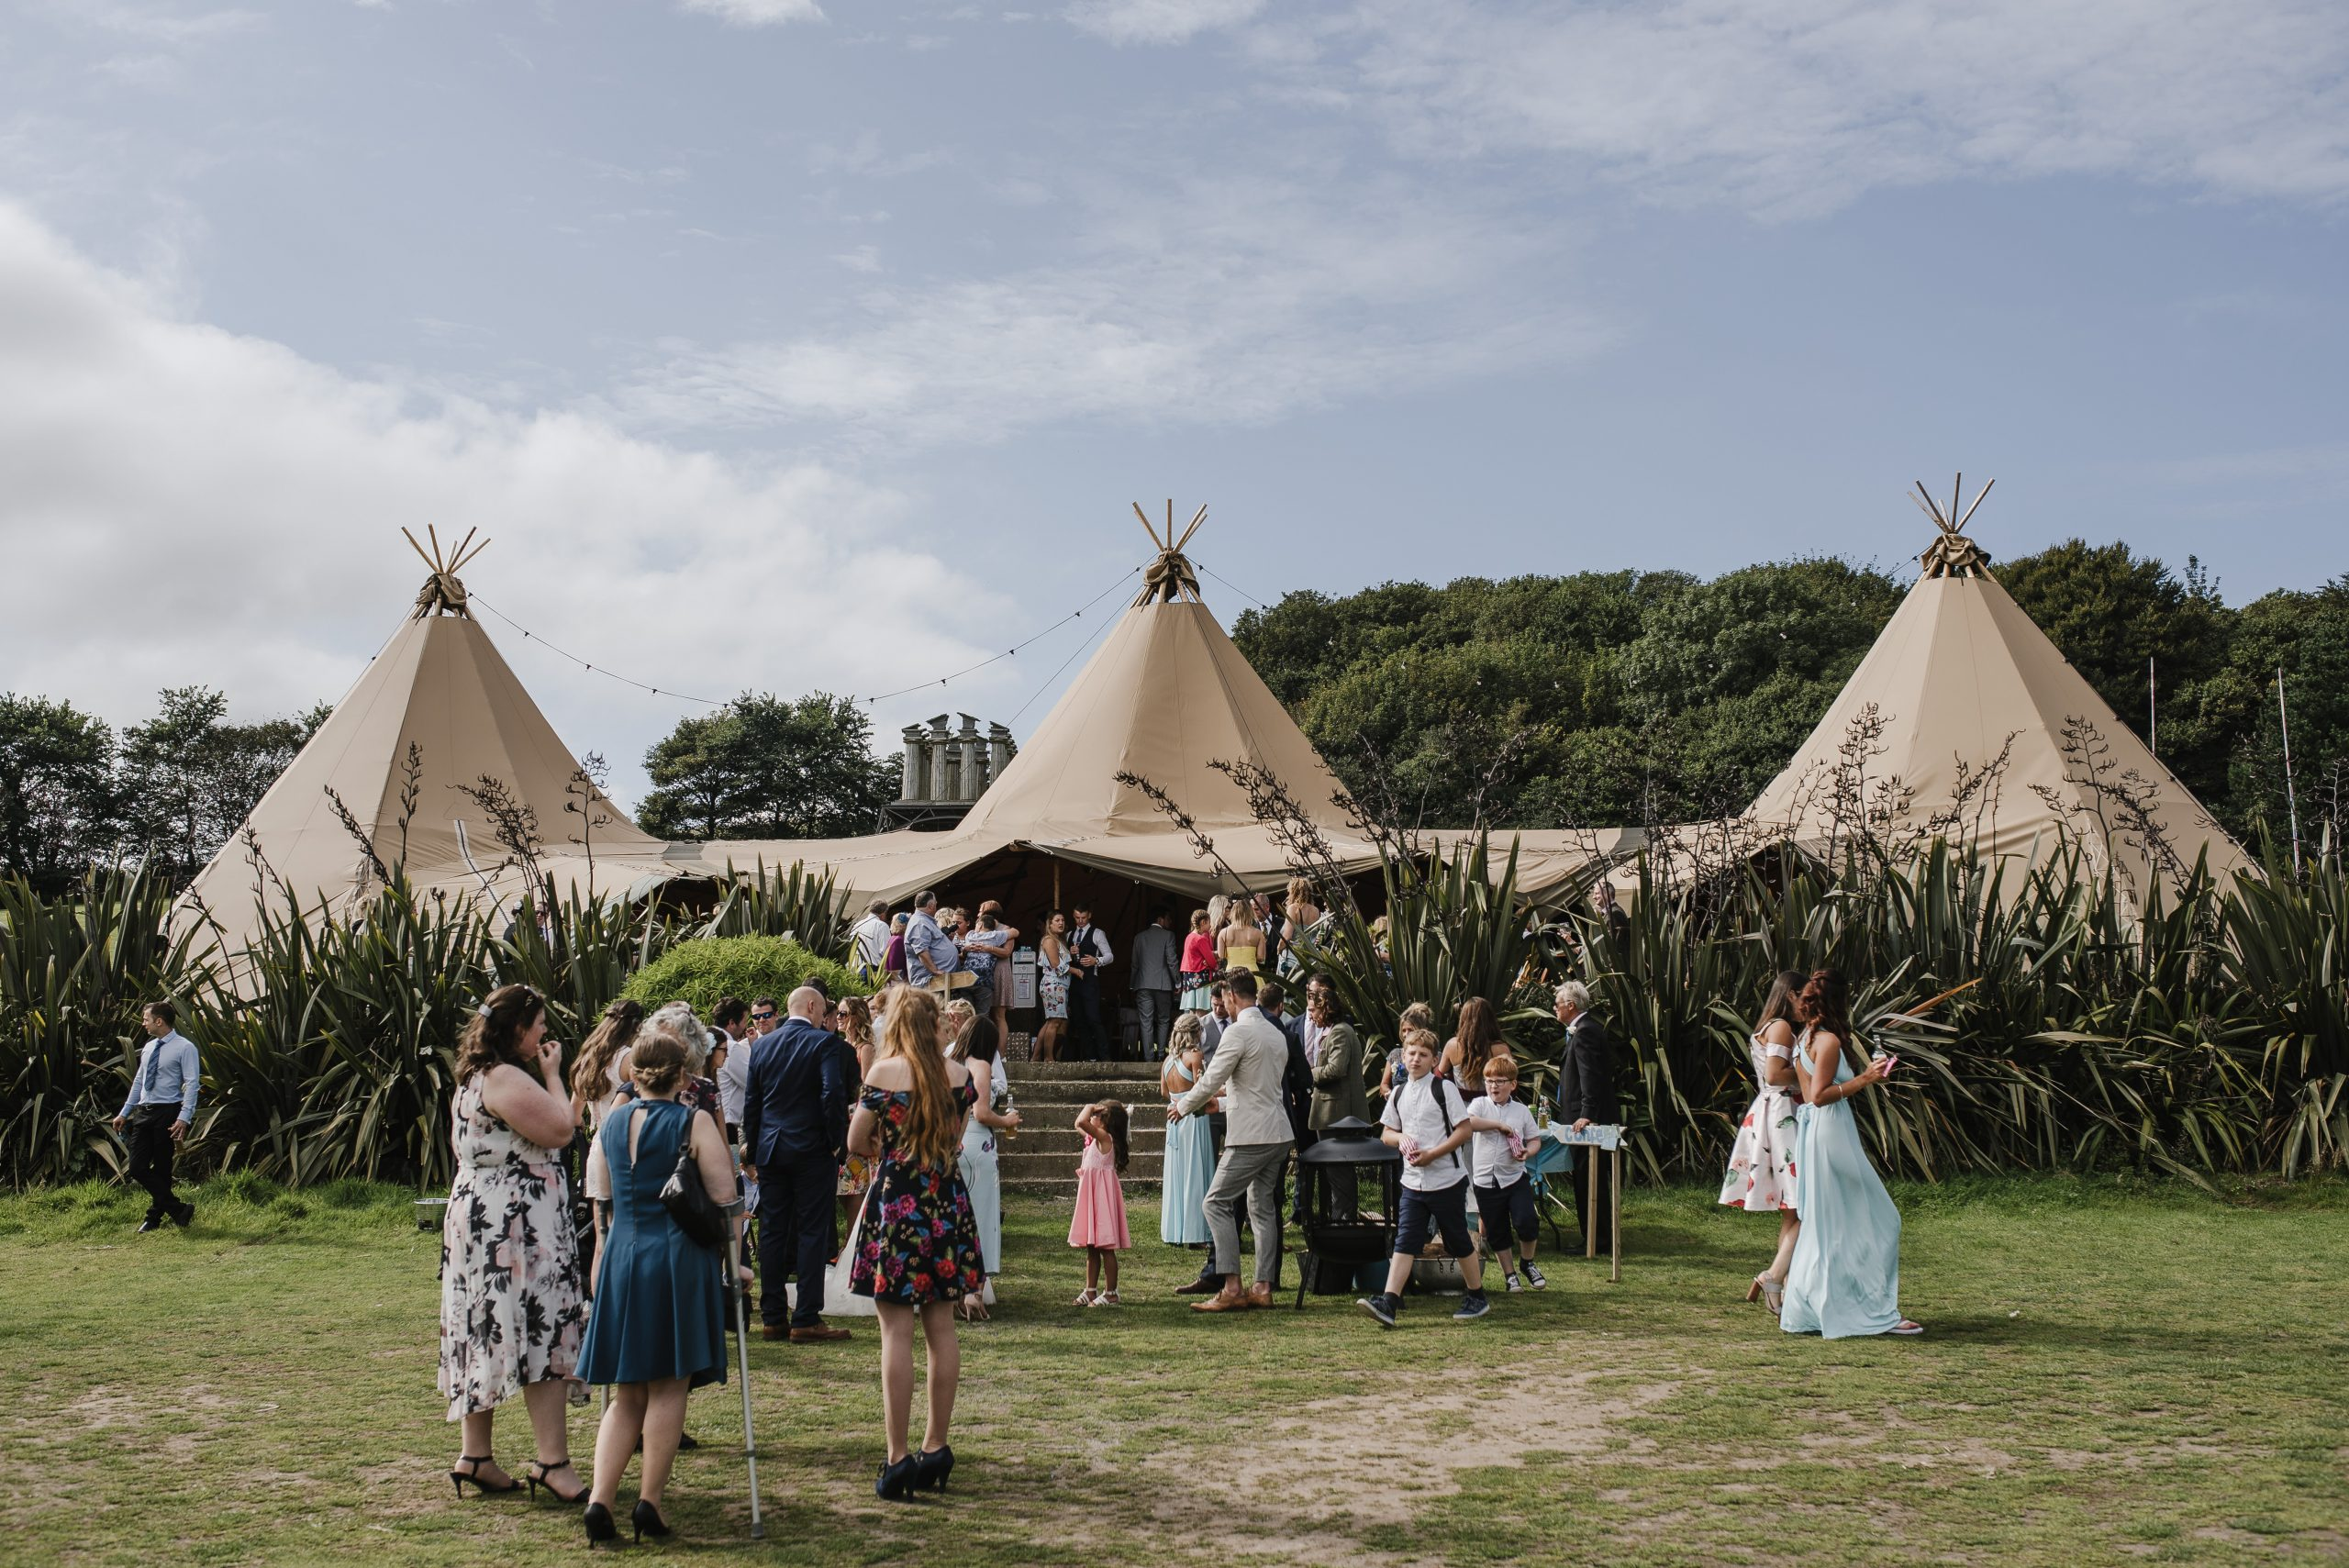 Tipi wedding event